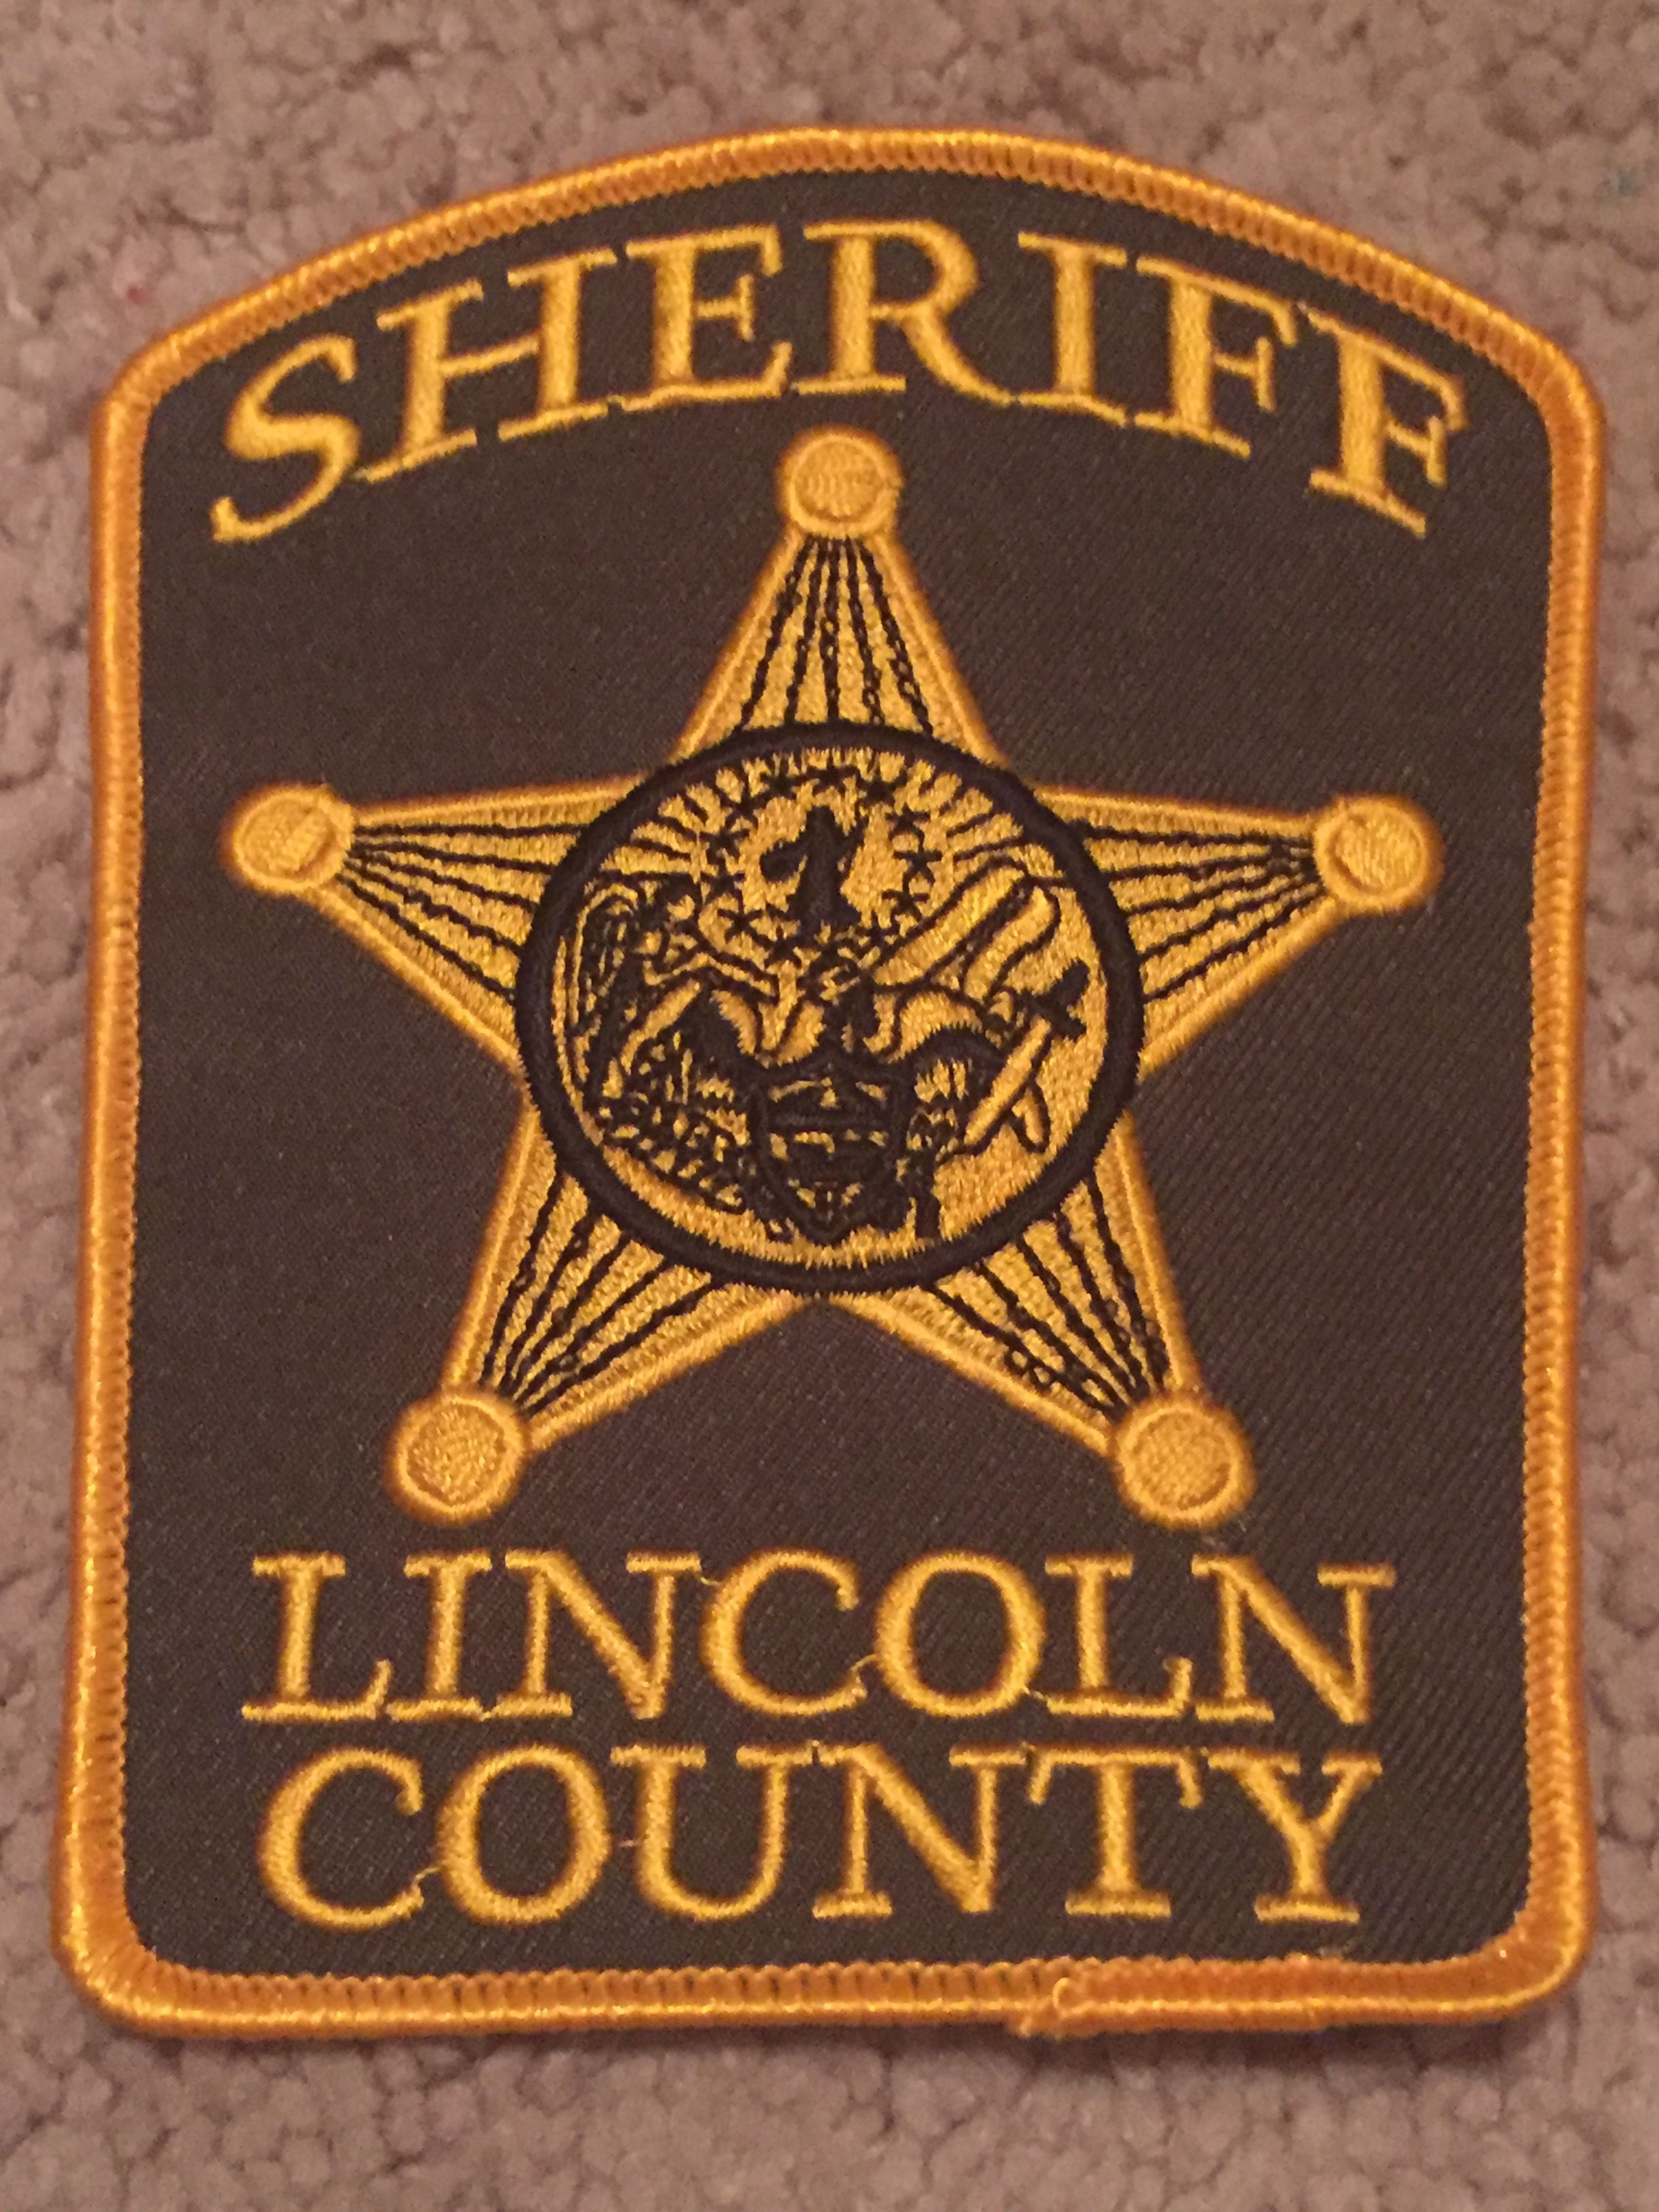 Lincoln County Office - Www imagez co